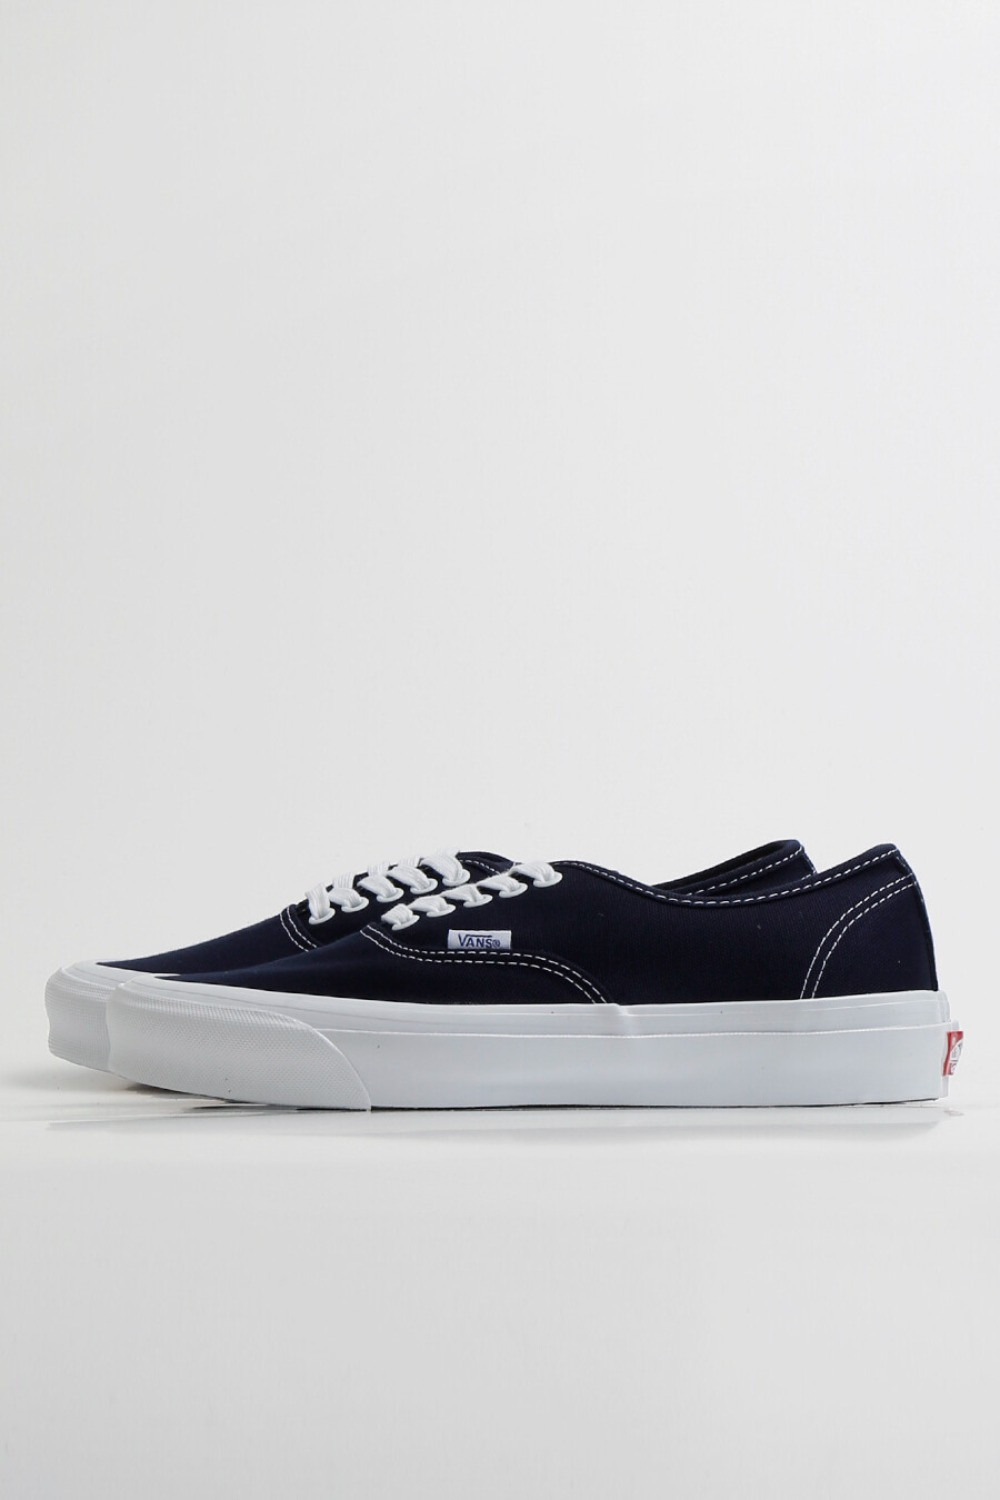 OG AUTHENTIC LX(CANVAS)NAVY